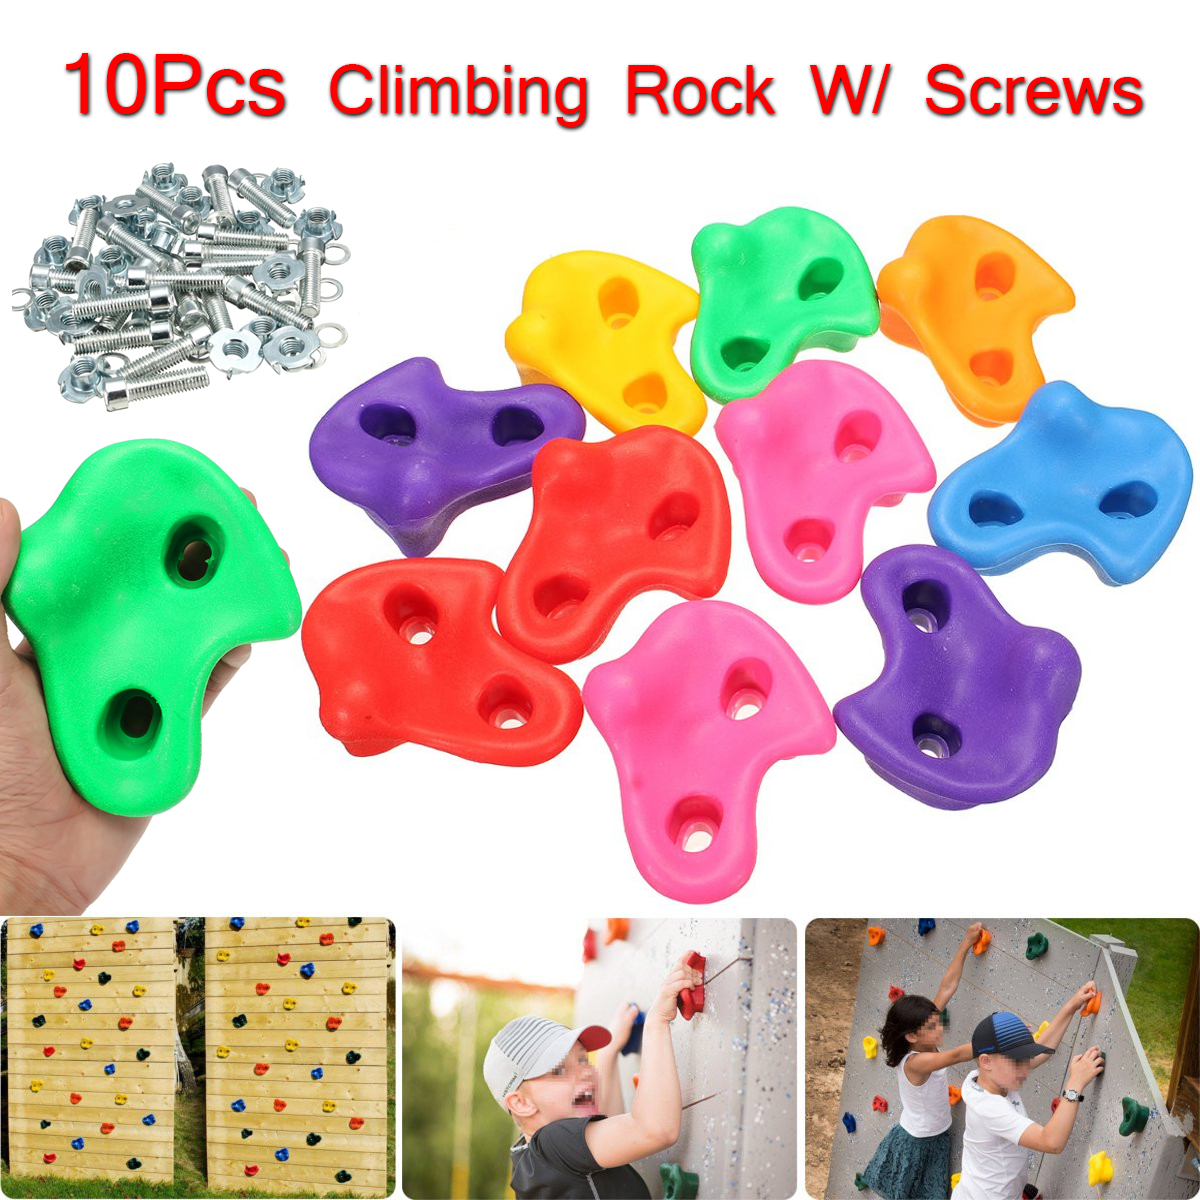 10pcs Plastic Climbing Holds Grips Children/'s Kids Rock Climbing Wall Stones